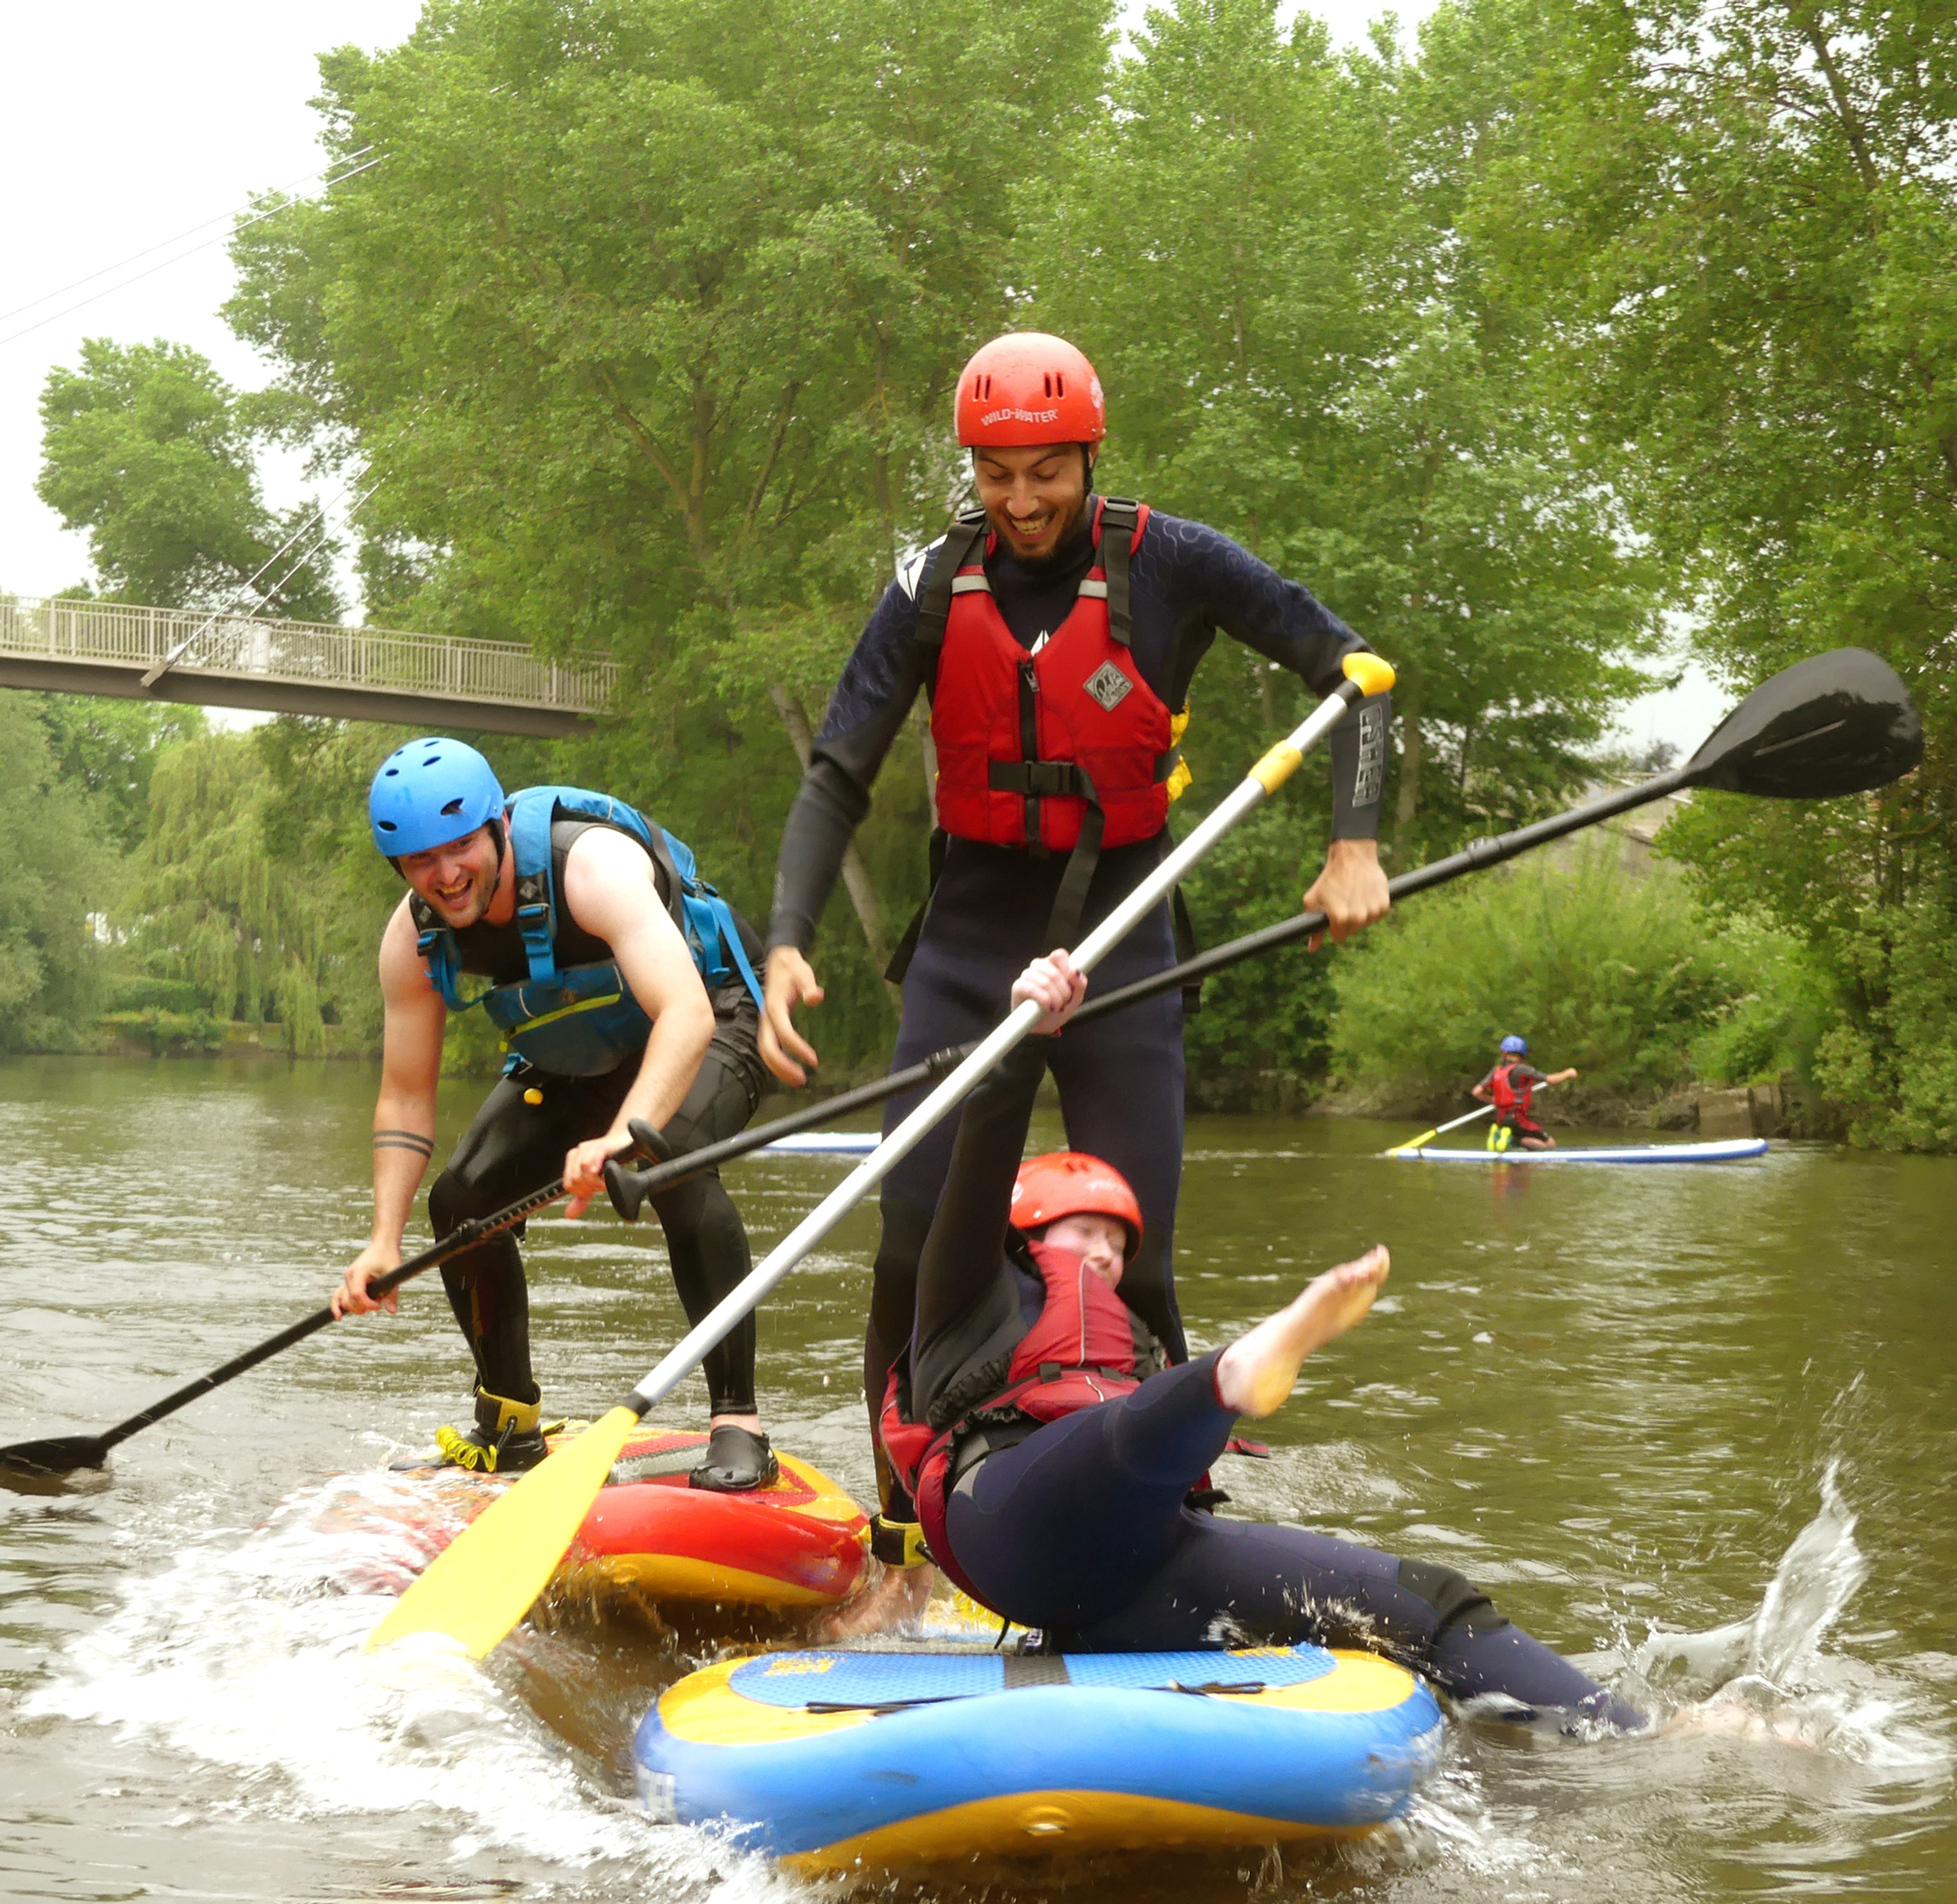 Paddleboard Hire, Guiding And Lesson In Shropshire